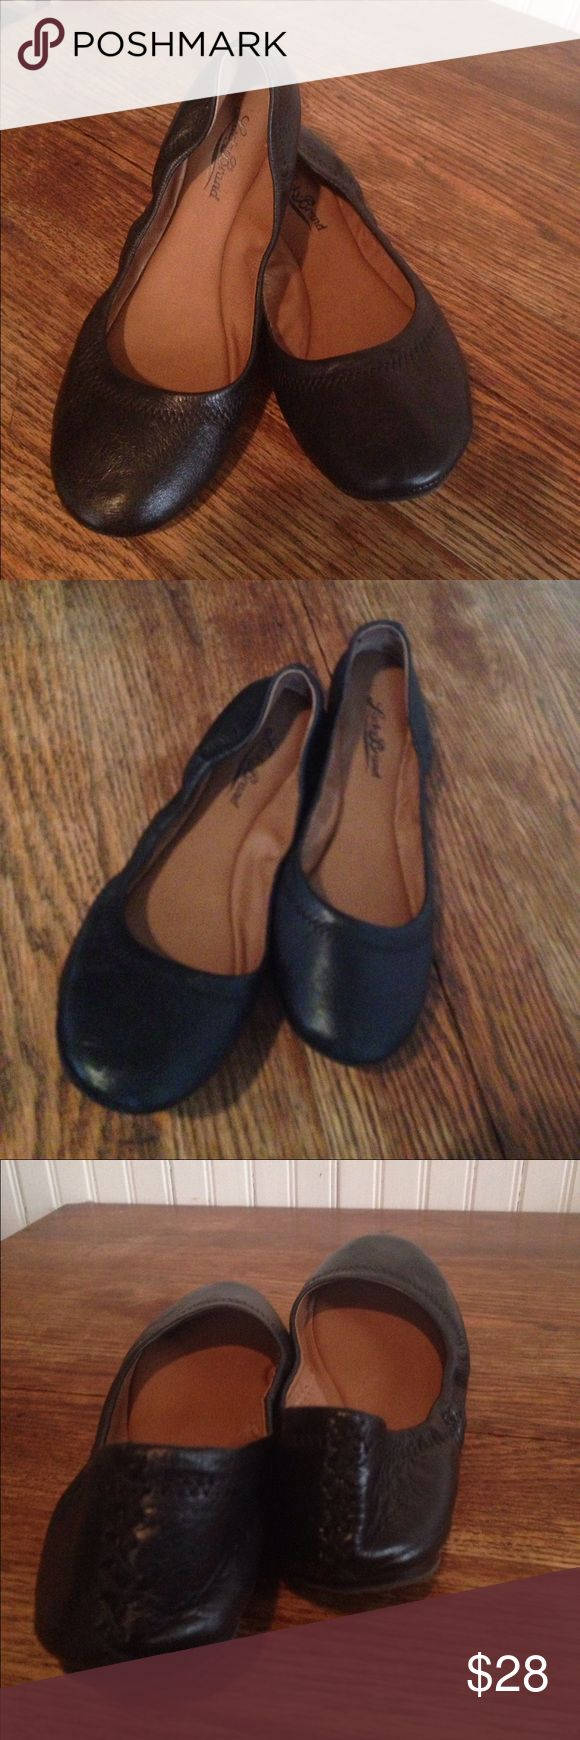 Lucky Brand black leather flats size 8 Lucky Brand black leather flats size 8 , beautiful smooth leather . Great condition Lucky Brand Shoes Flats & Loafers